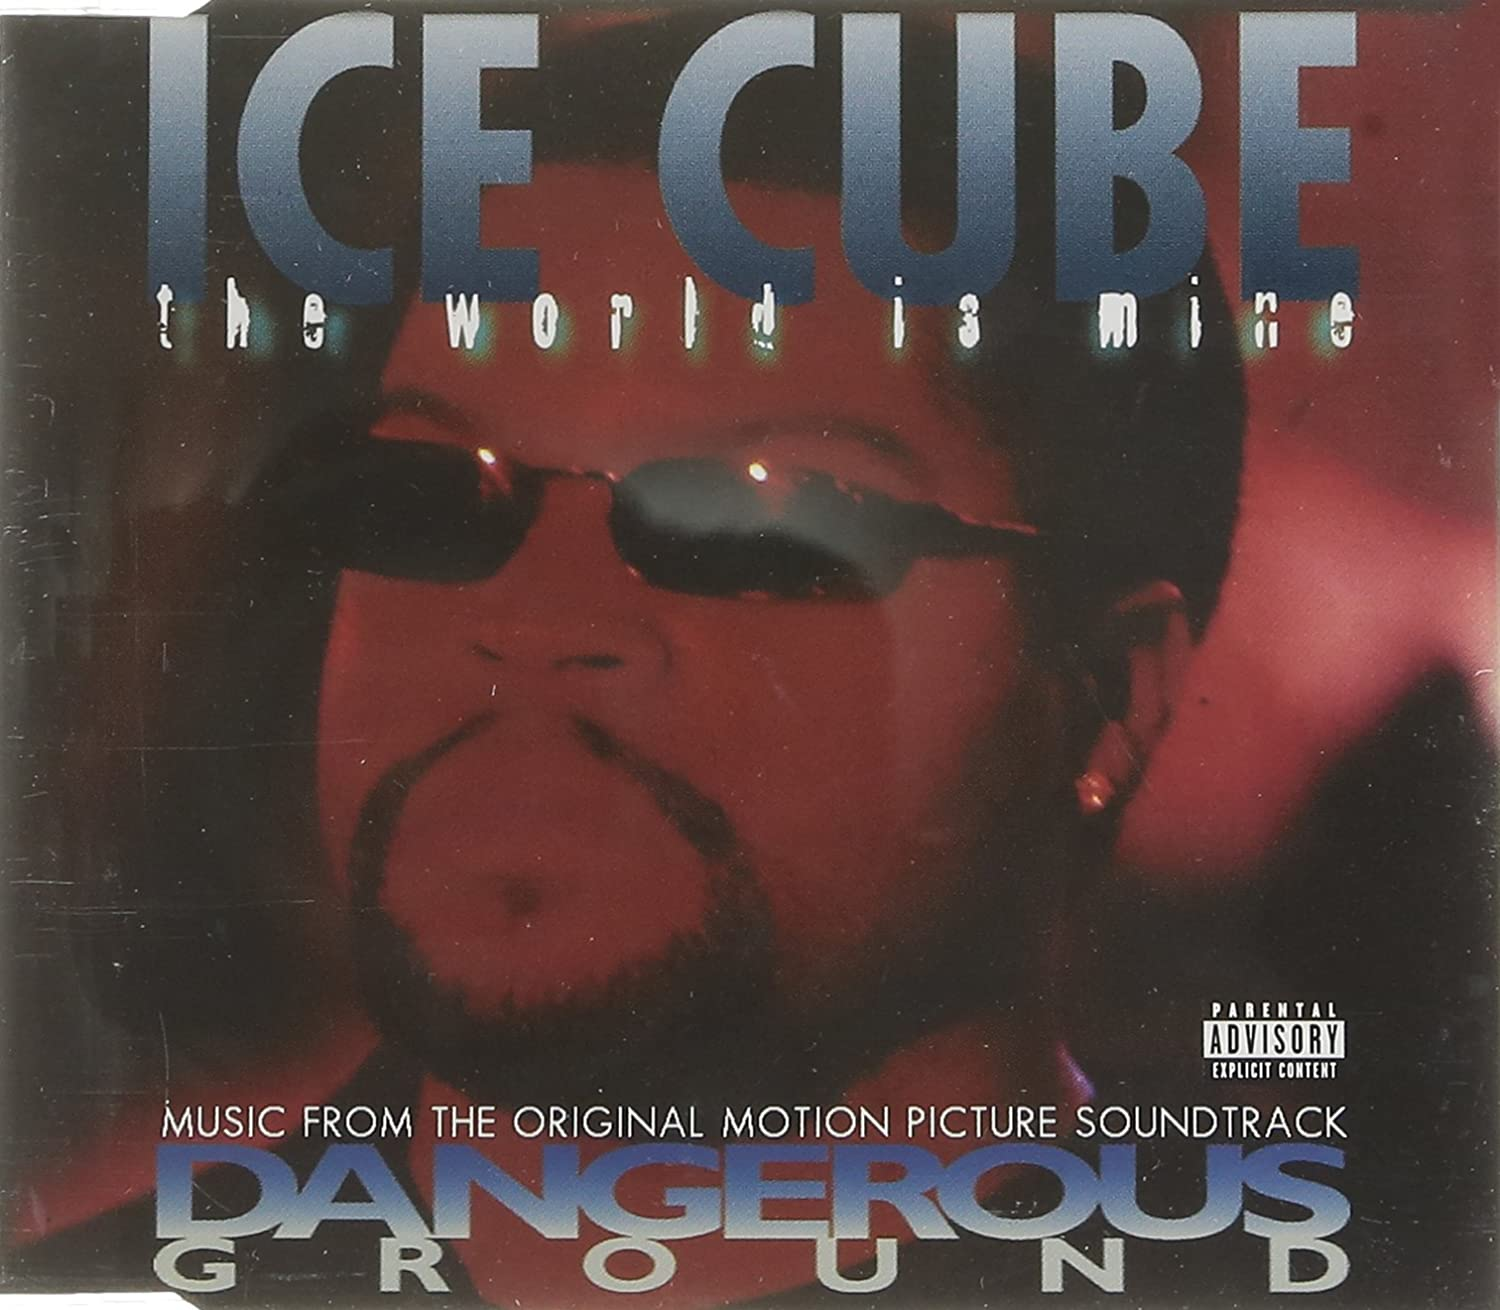 Ice cube world is mine amazon music 1betcityfo Images